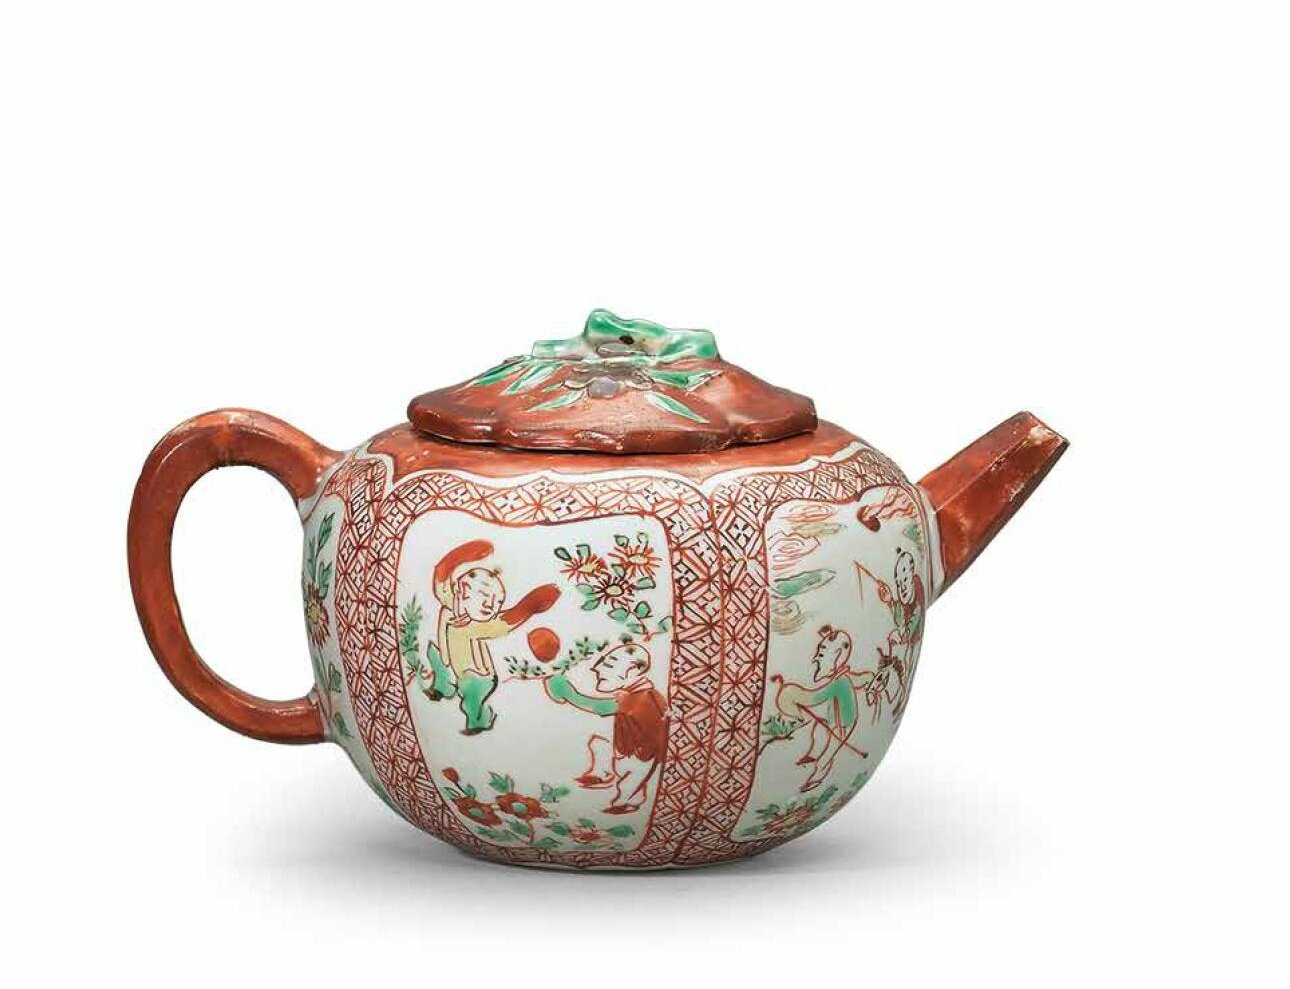 A very rare Kinrande tea pot, Jiajing period (1522-1566)